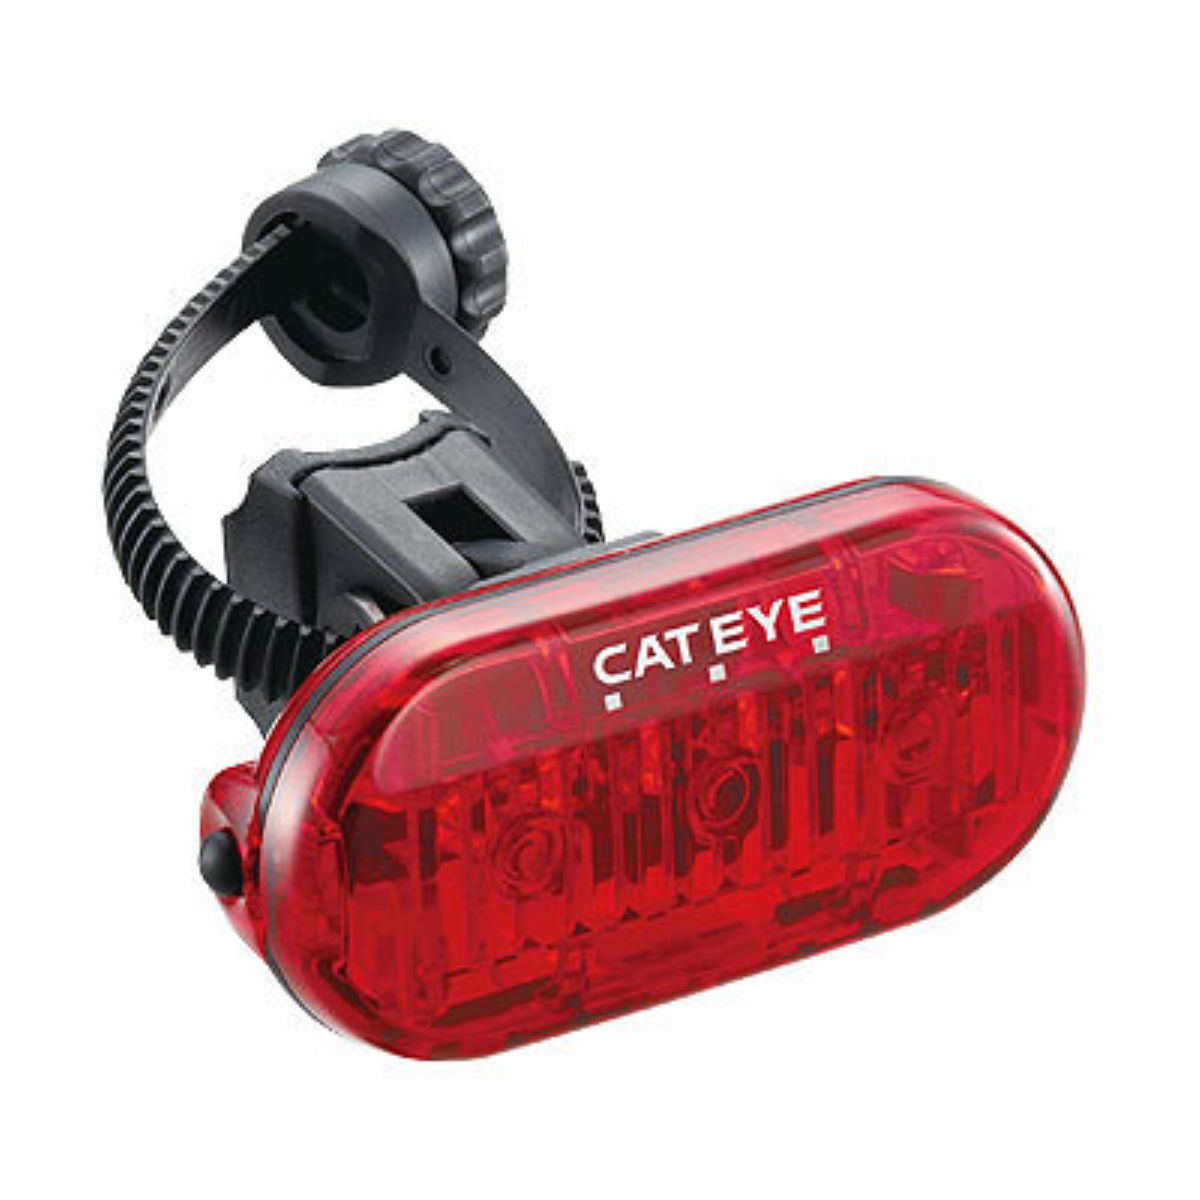 Cateye Omni 3 Rear Light - Luces traseras